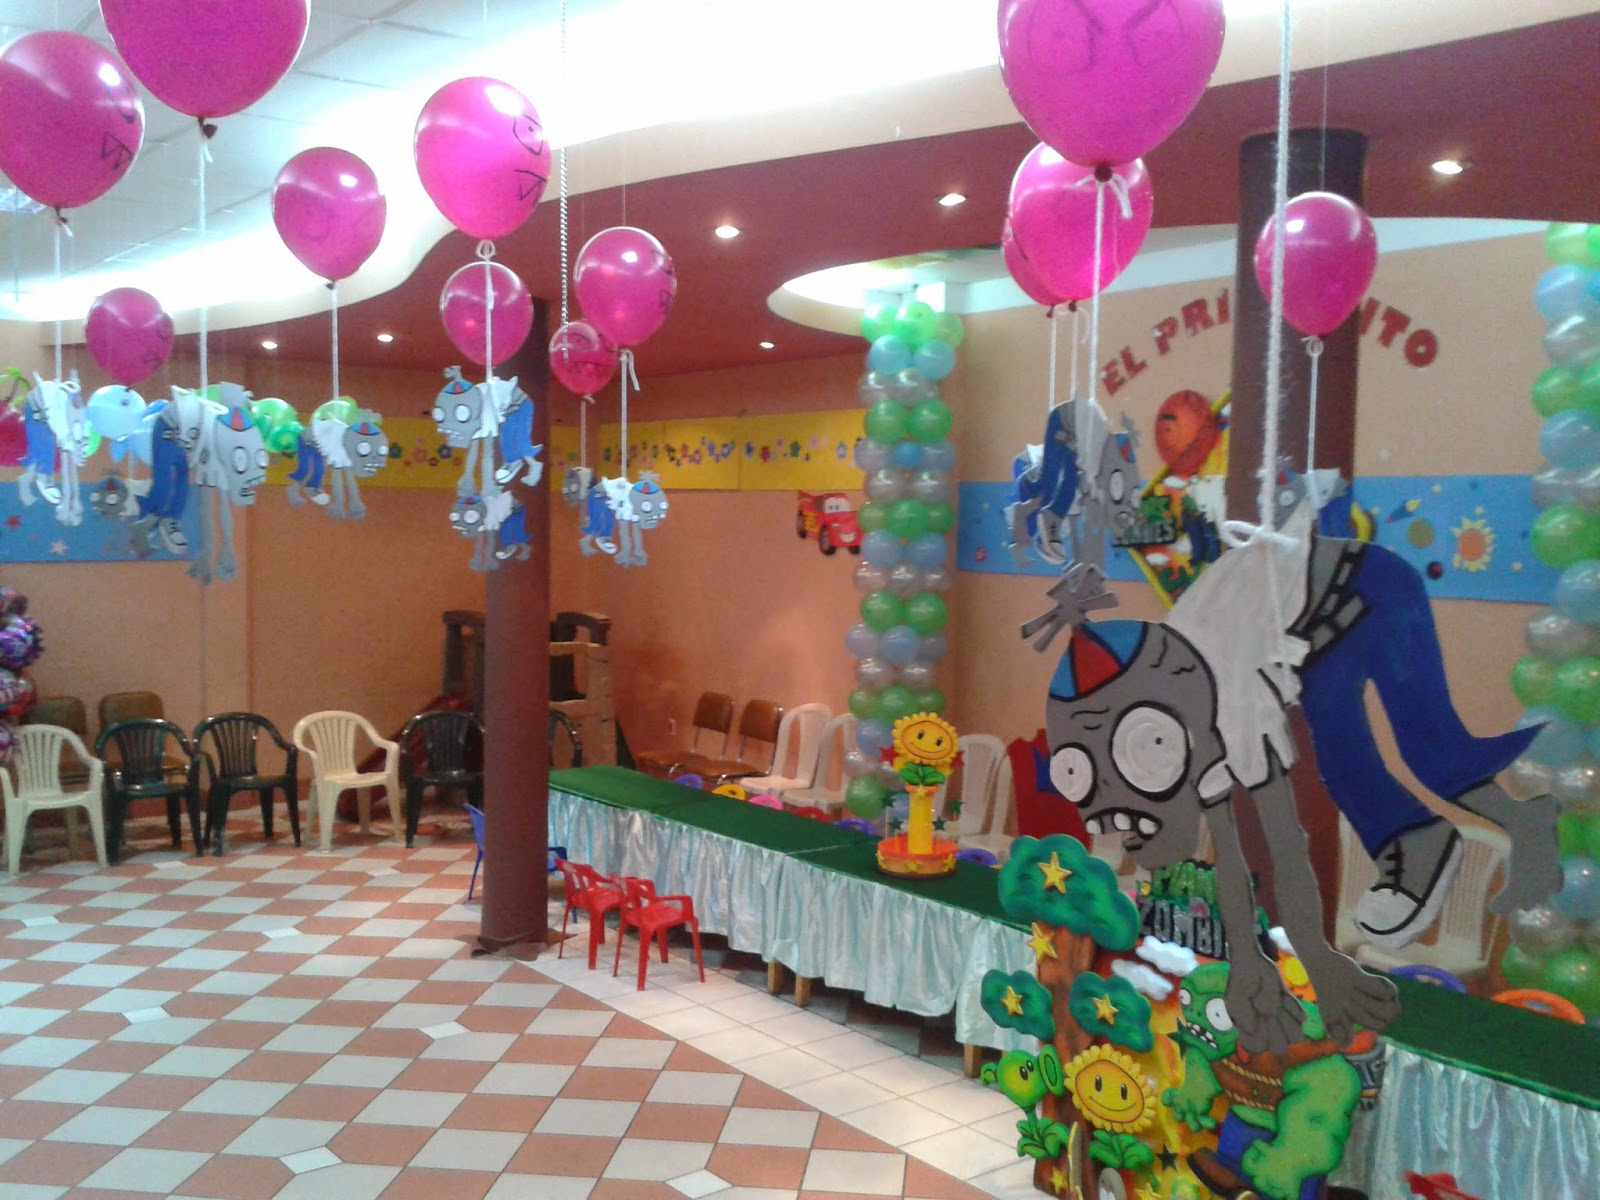 El principito decoracion plantas vs zombies for Decoracion con globos plantas contra zombies